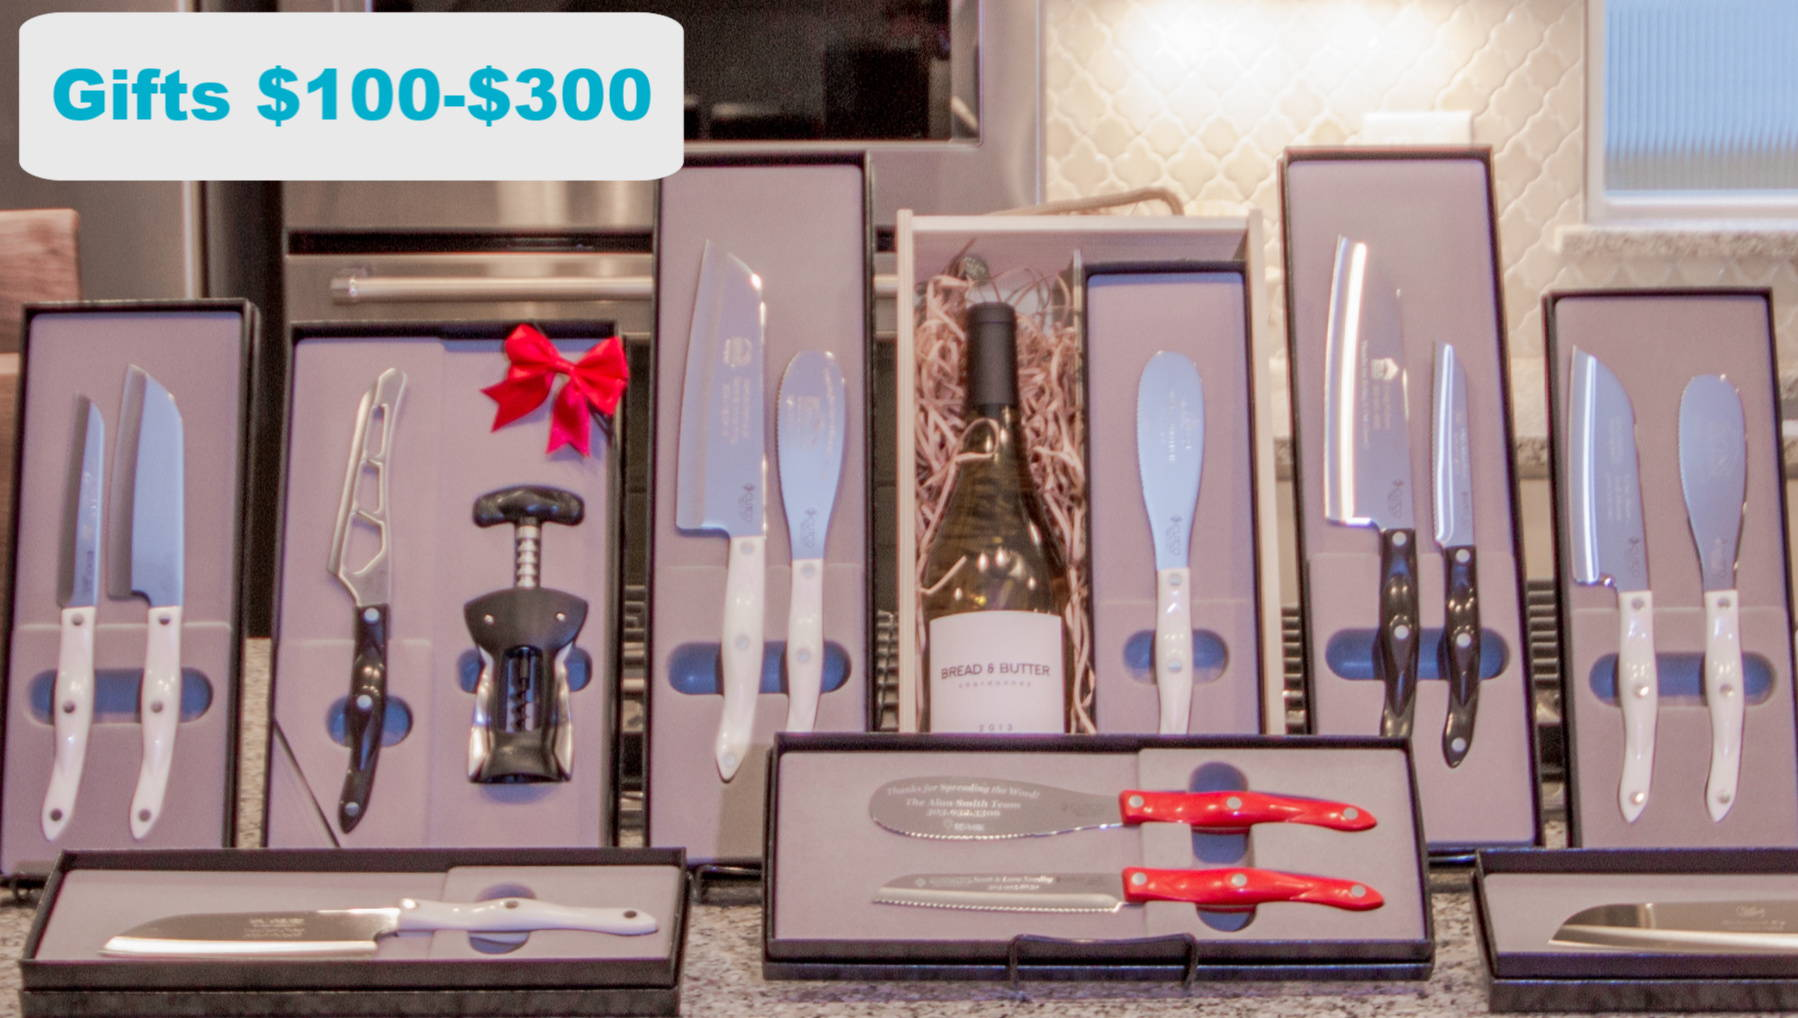 Branded Closing Gifts Branded Client Gifts Under $300 under $200